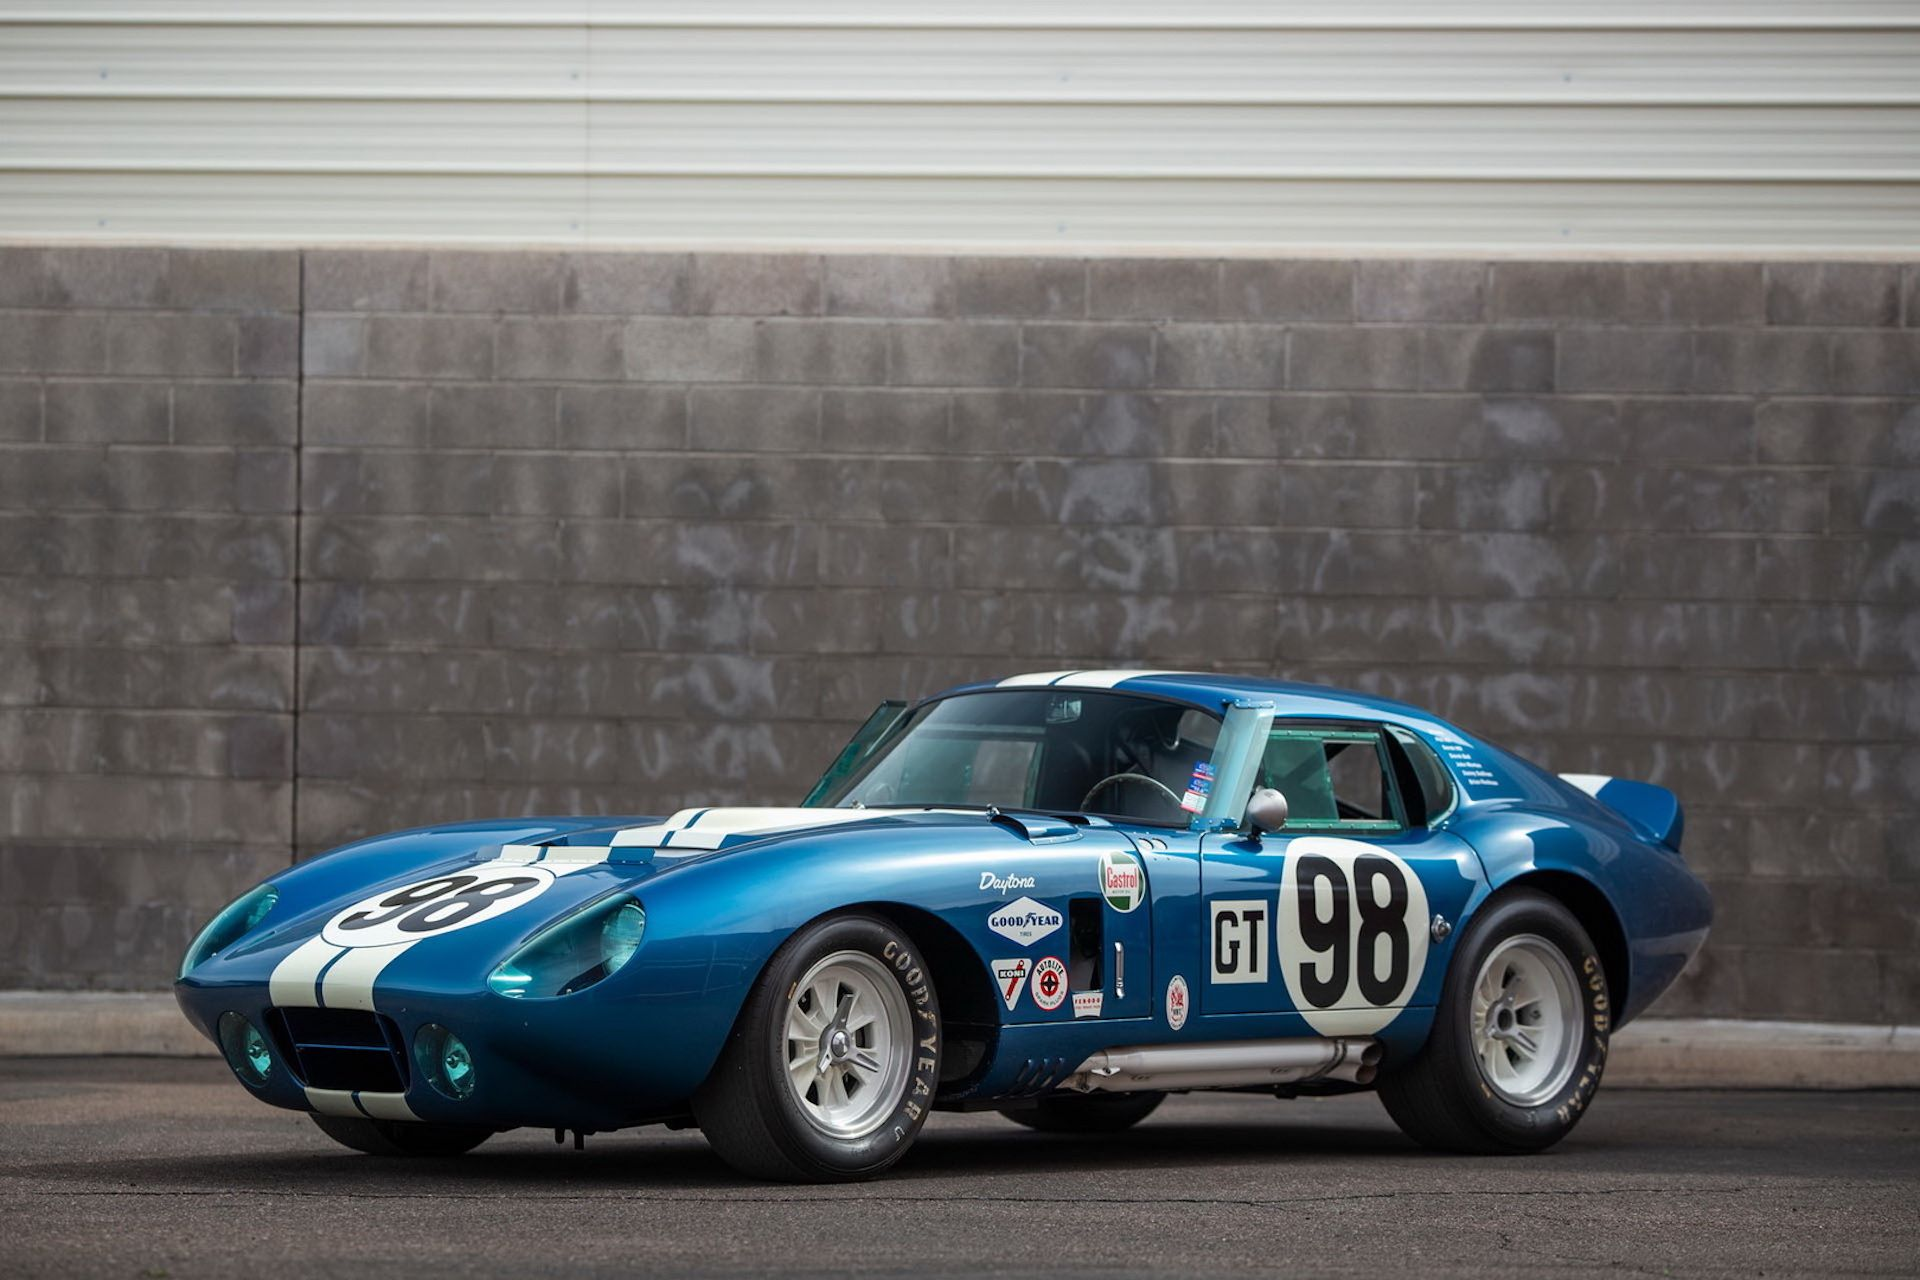 Daytona-Cobra-Carroll-Shelby-auction-AC-Cobra-23